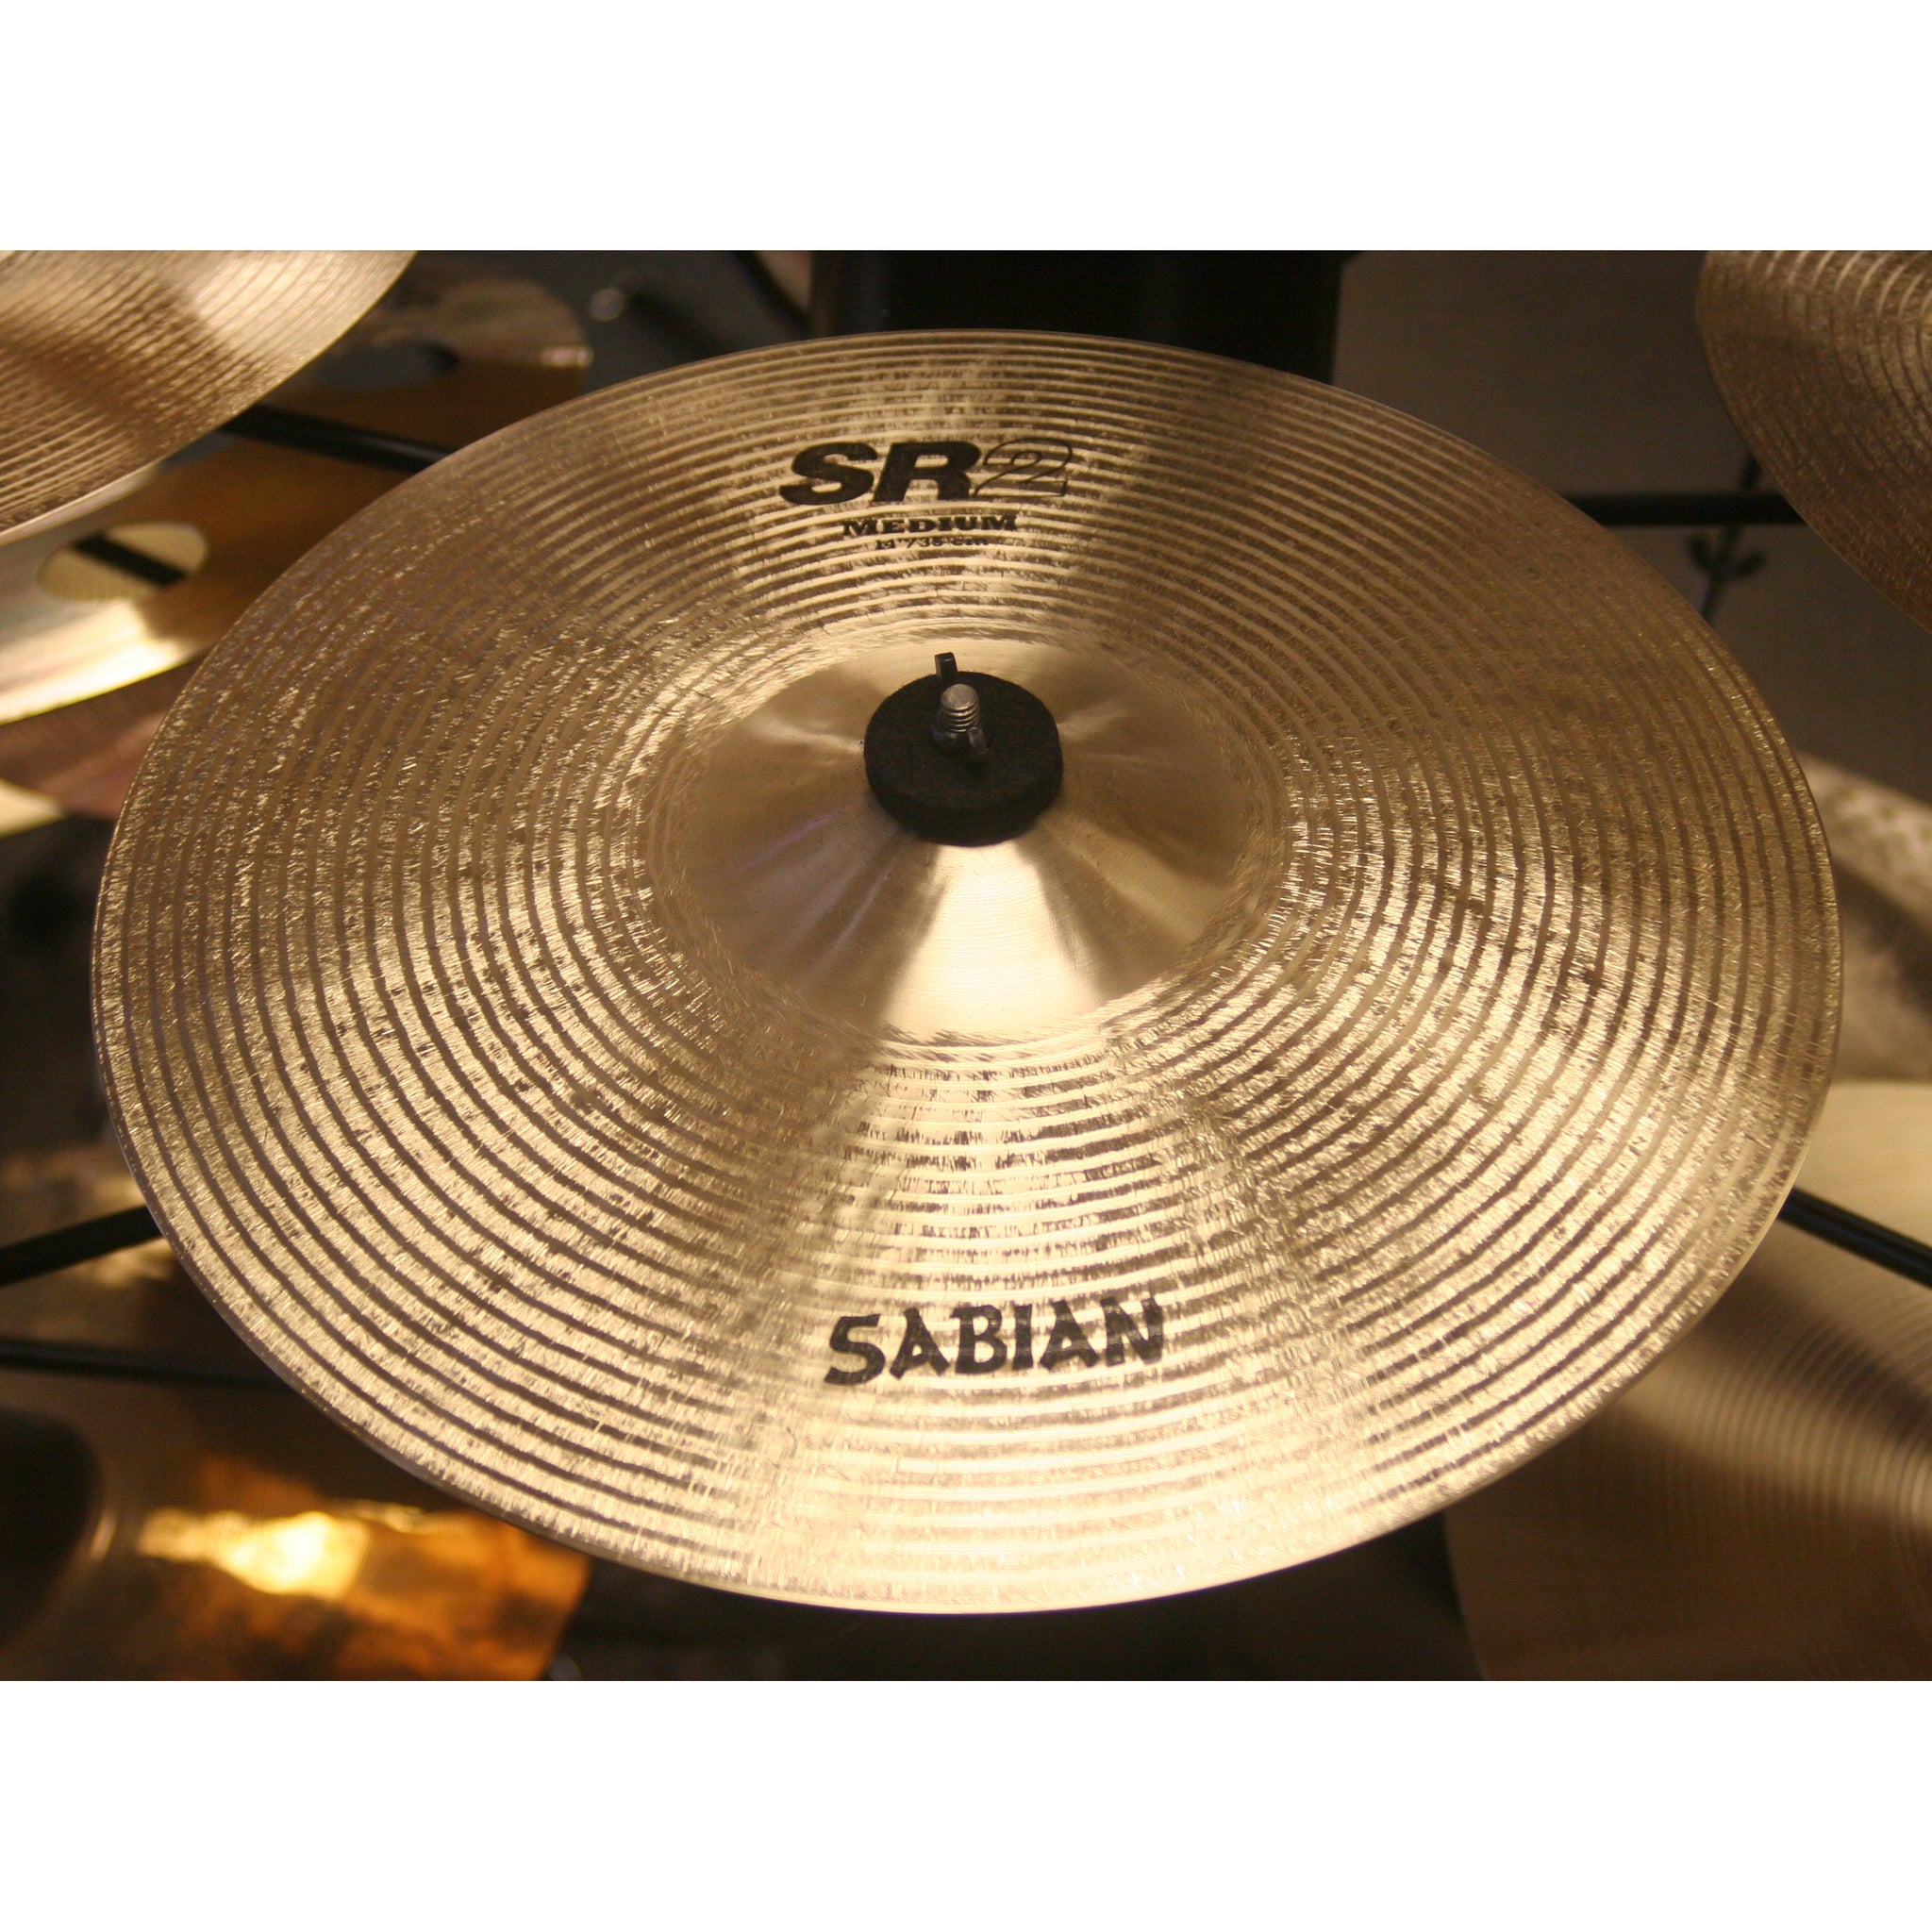 "Sabian SR2 14"" Medium Cymbal"